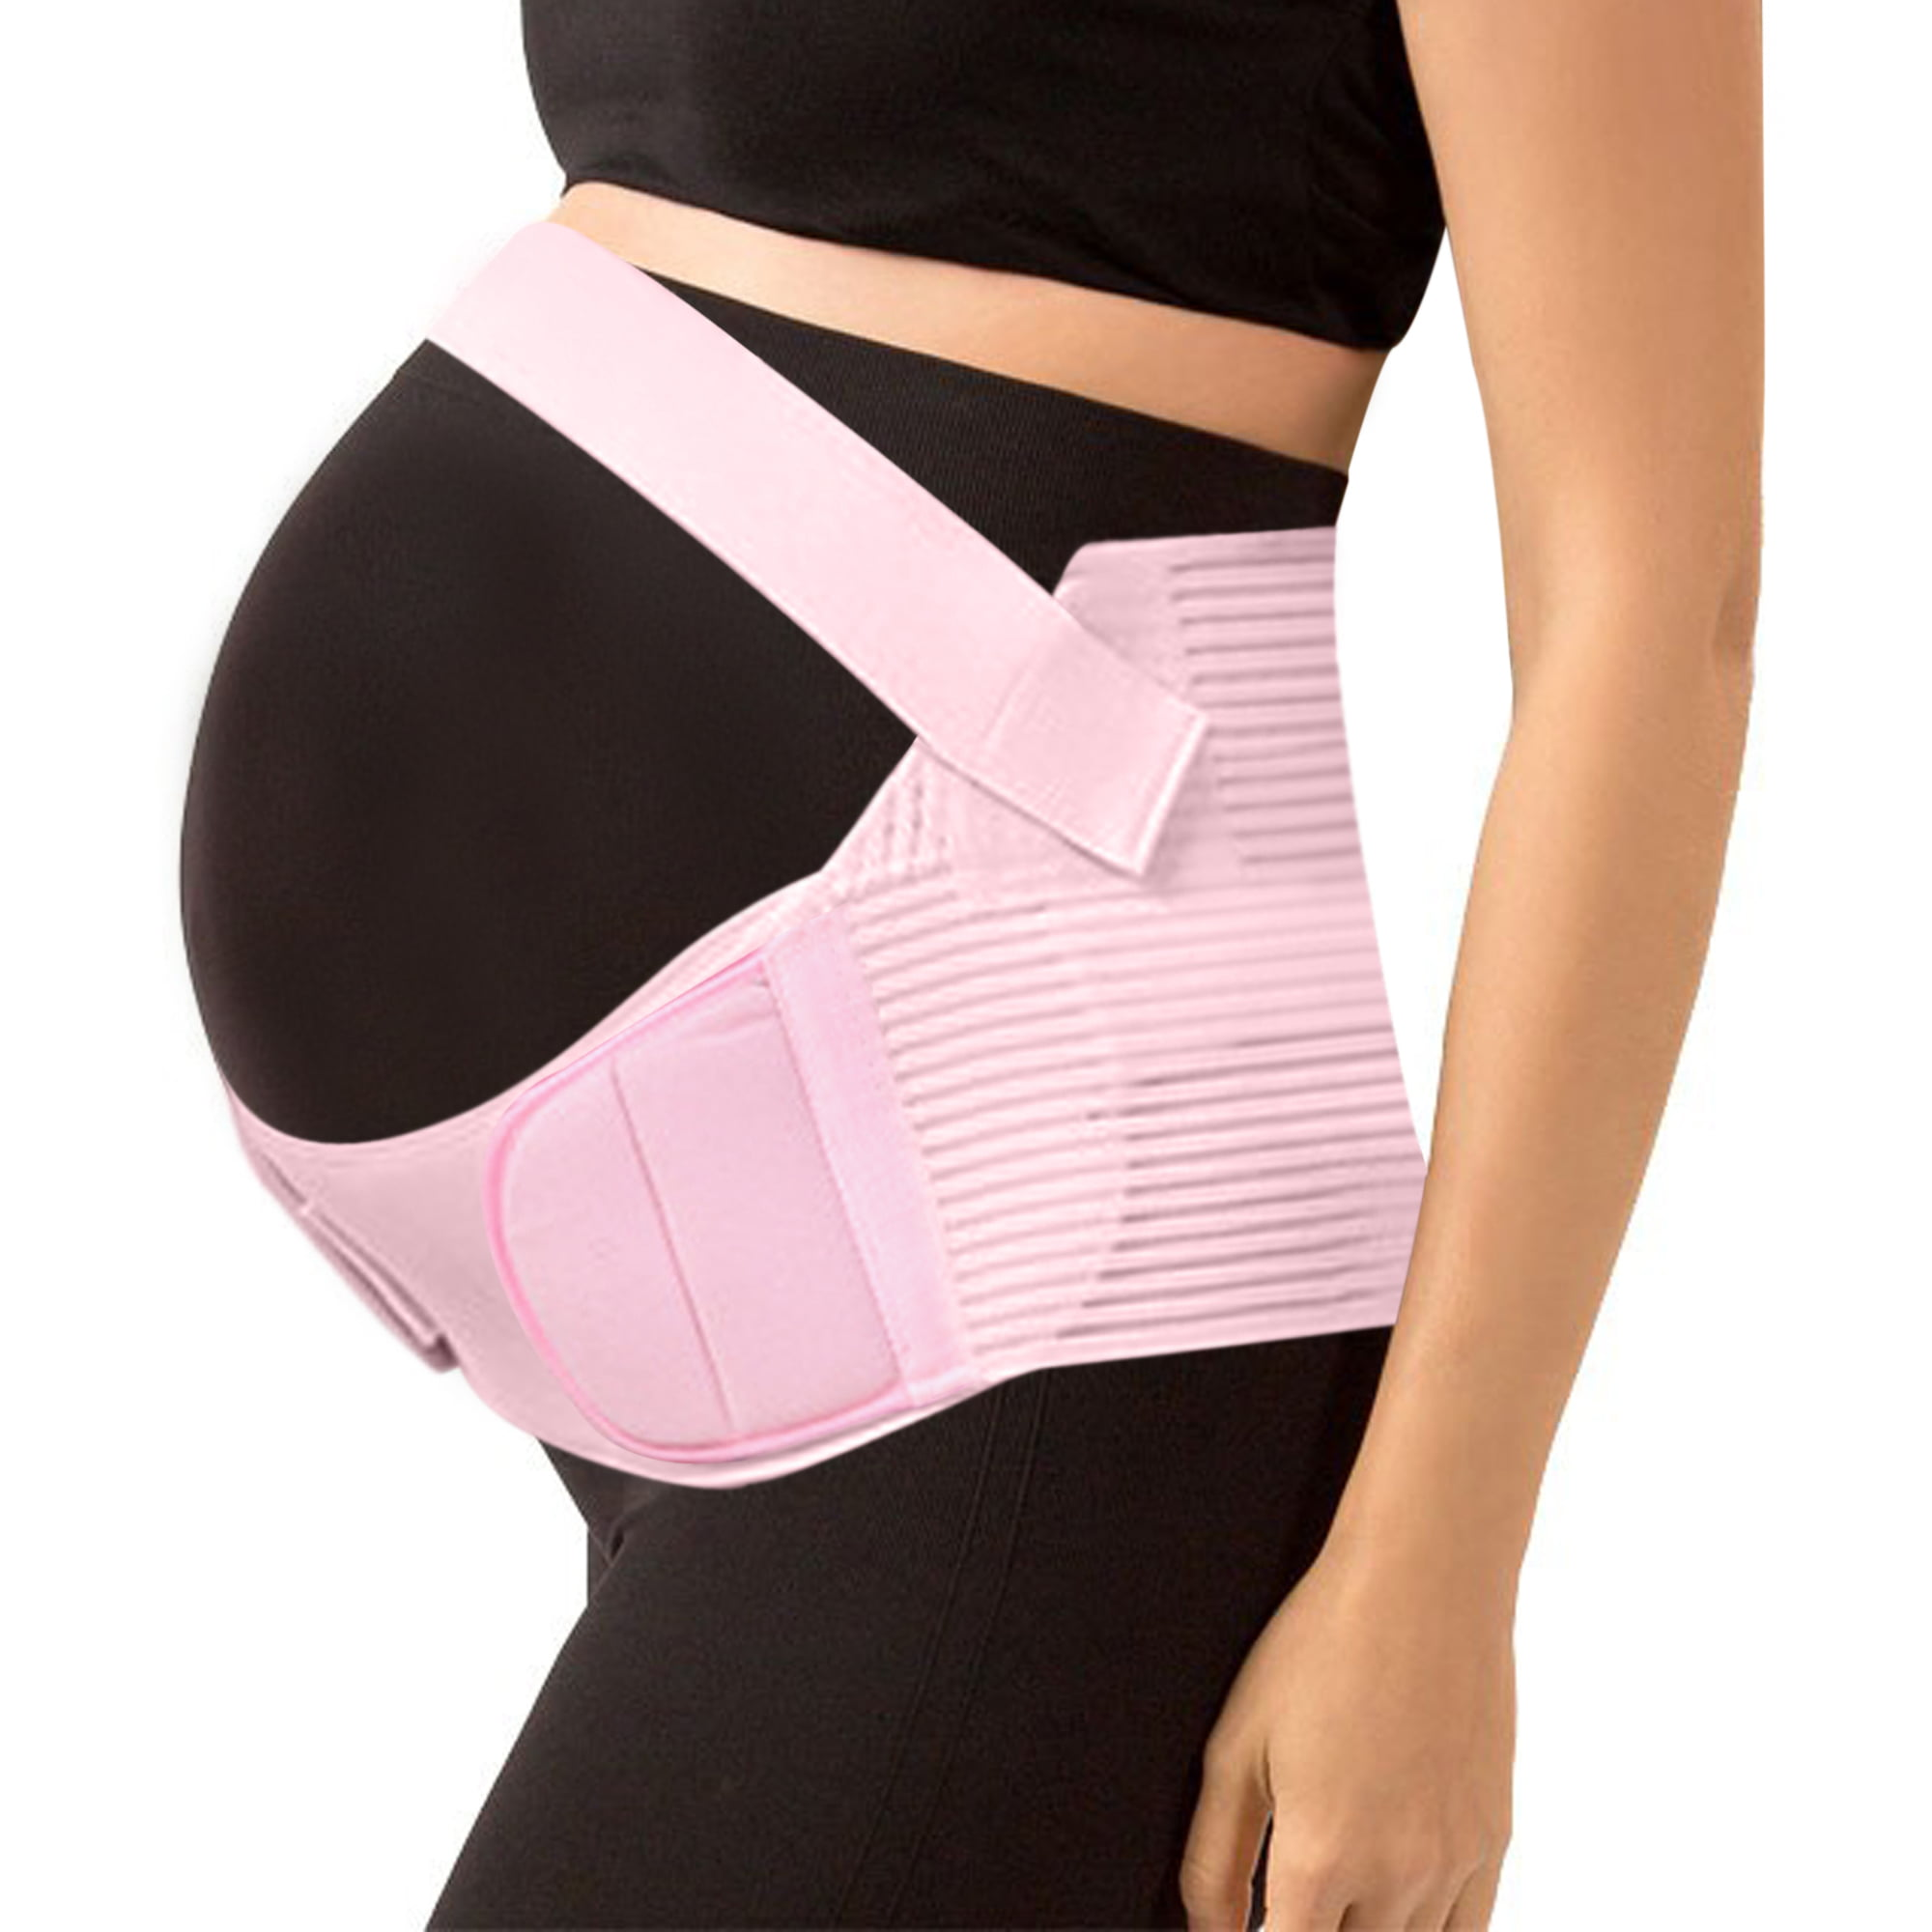 Maternity Belt For Back Pain Baby Pink Color//Size XL Pregnancy Belt Pregnancy Support Belt With Adjustable//Breathable Material Belly Band For Pregnancy Prenatal Back Support For Pregnant Women